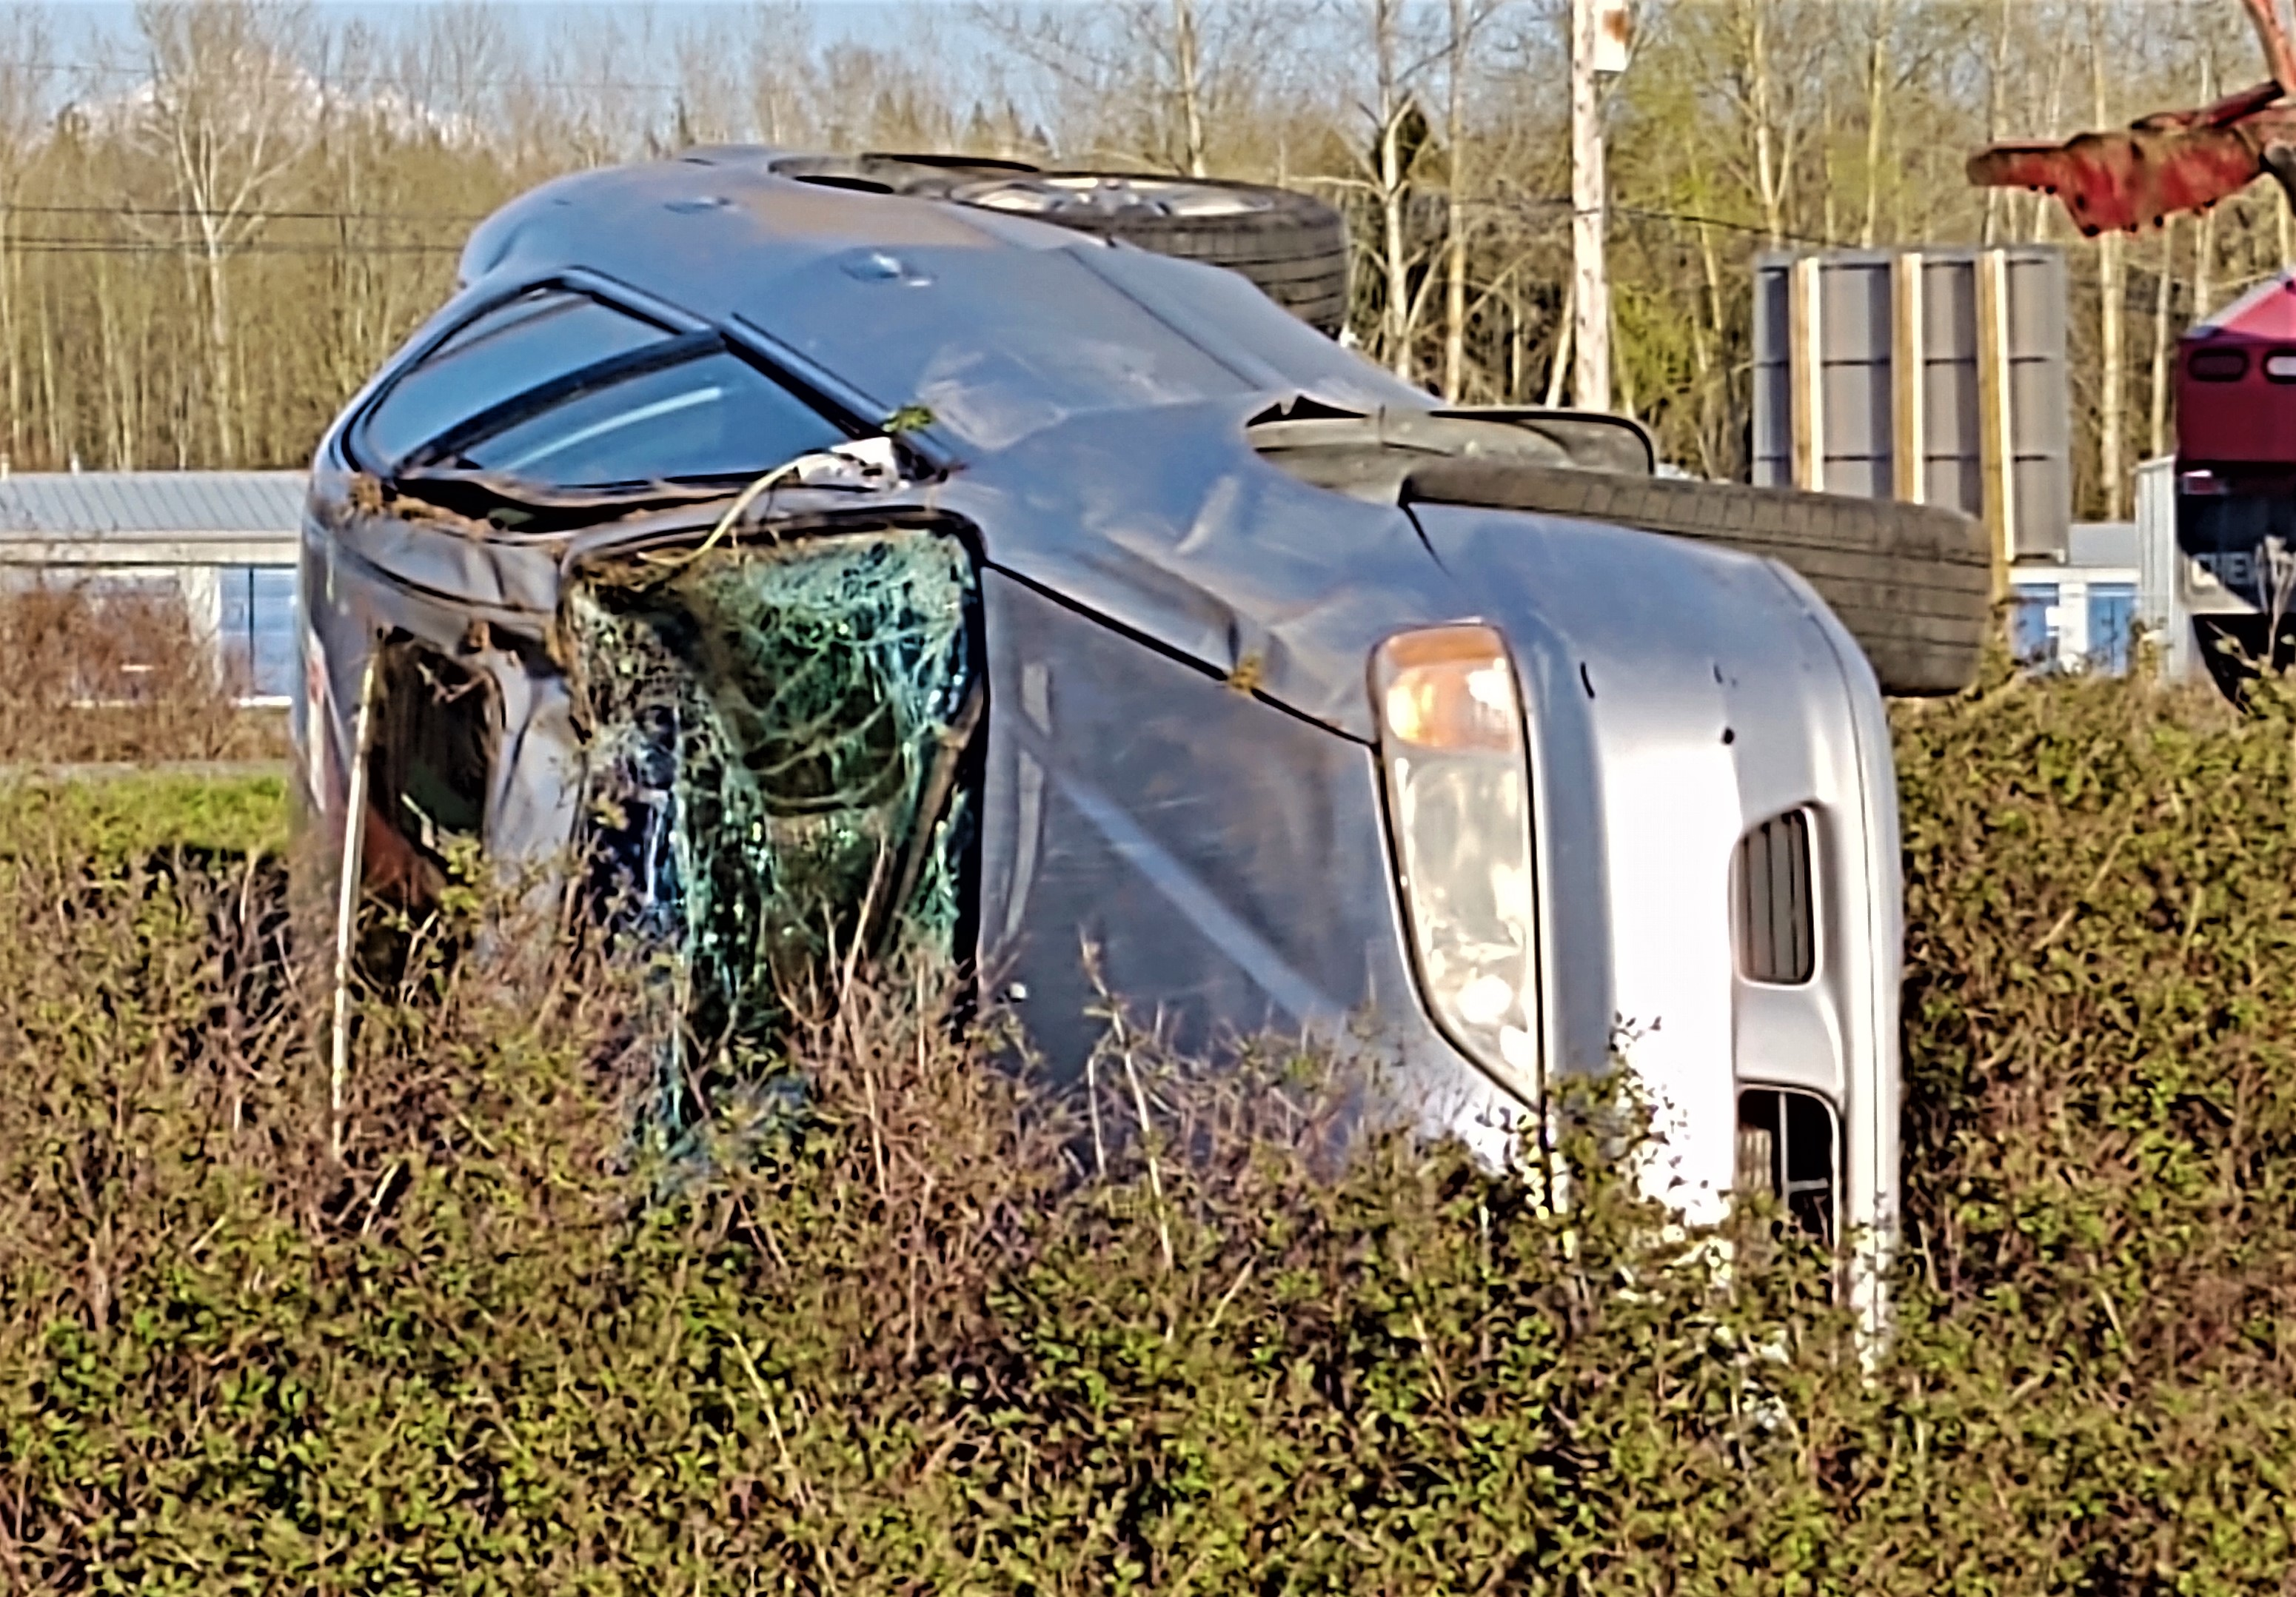 Scene of a rollover crash on southbound I-5 south of the Main Street interchange (April 9, 2020). Photo: My Ferndale News